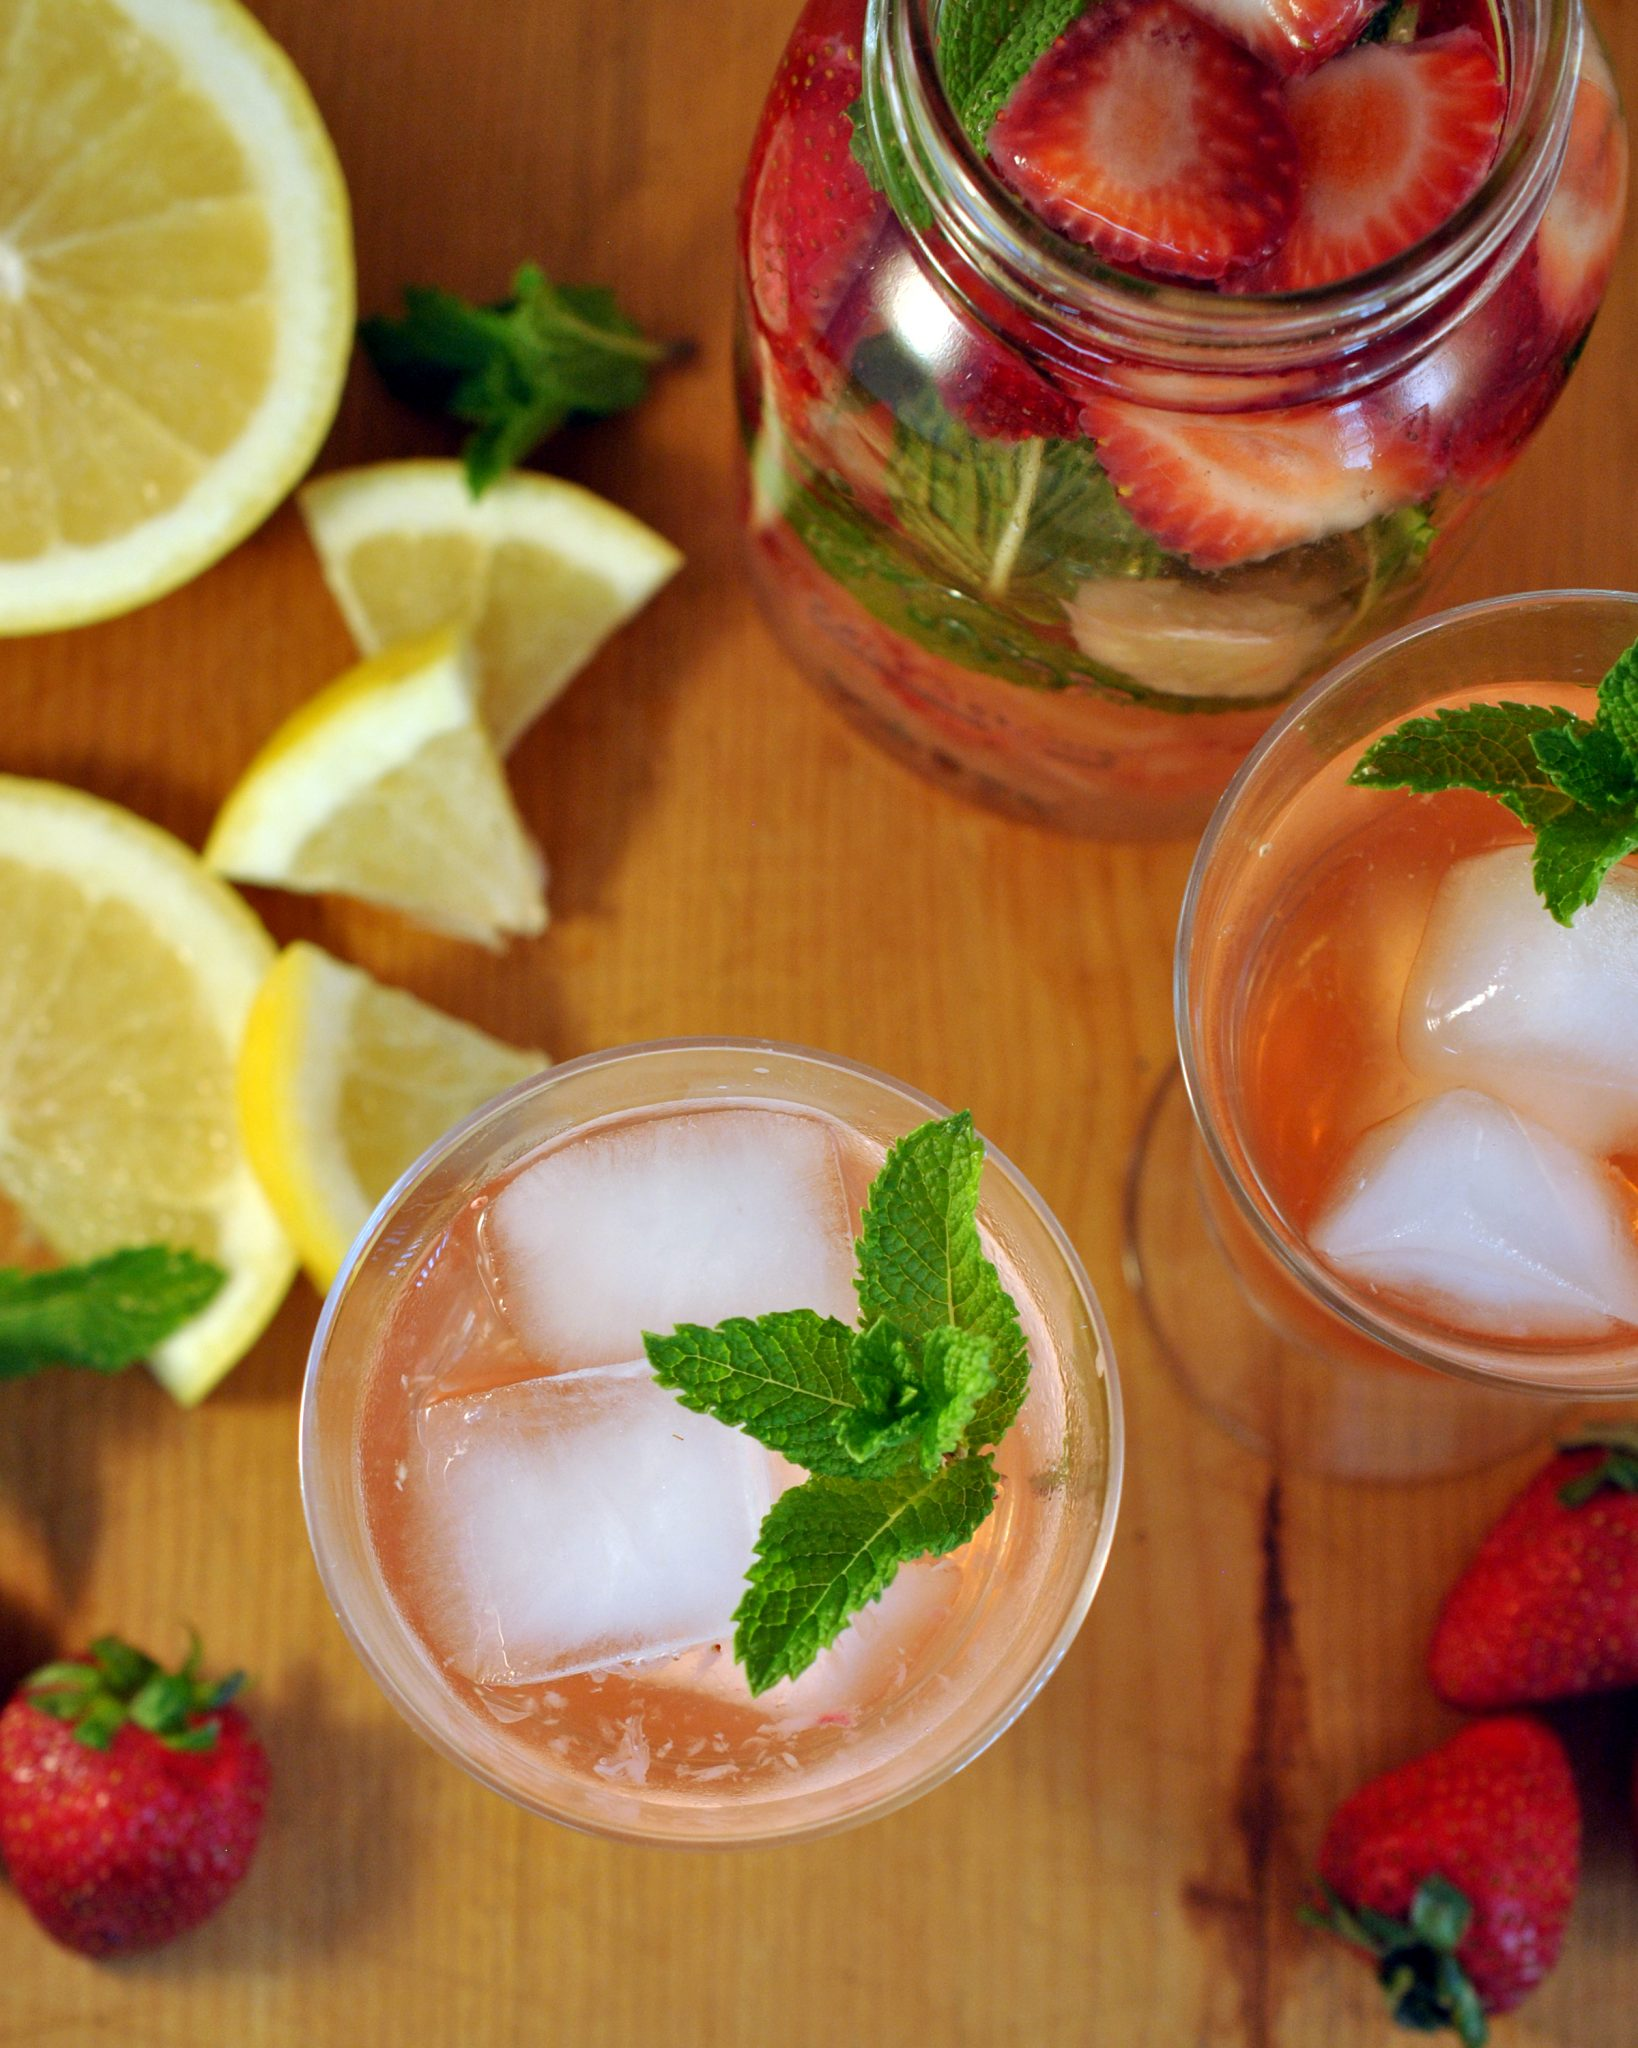 Strawberry Grapefruit Mint Infused Water